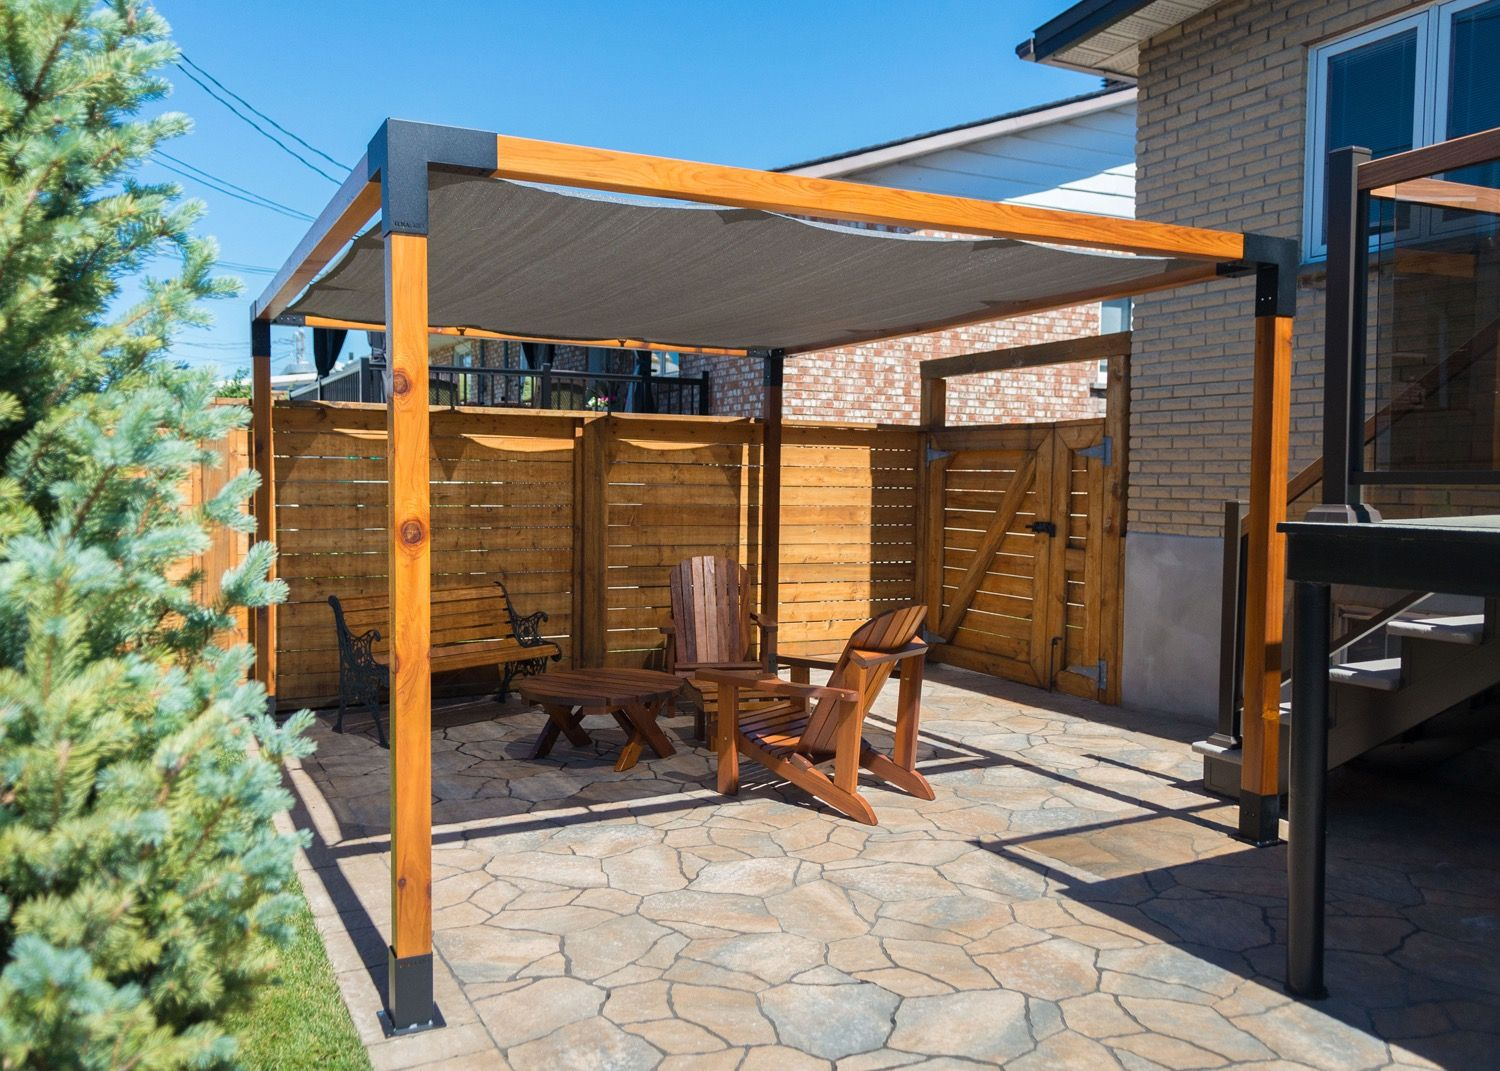 Pergola System Transform Your Patio Space Today With The Toja Grid Modular